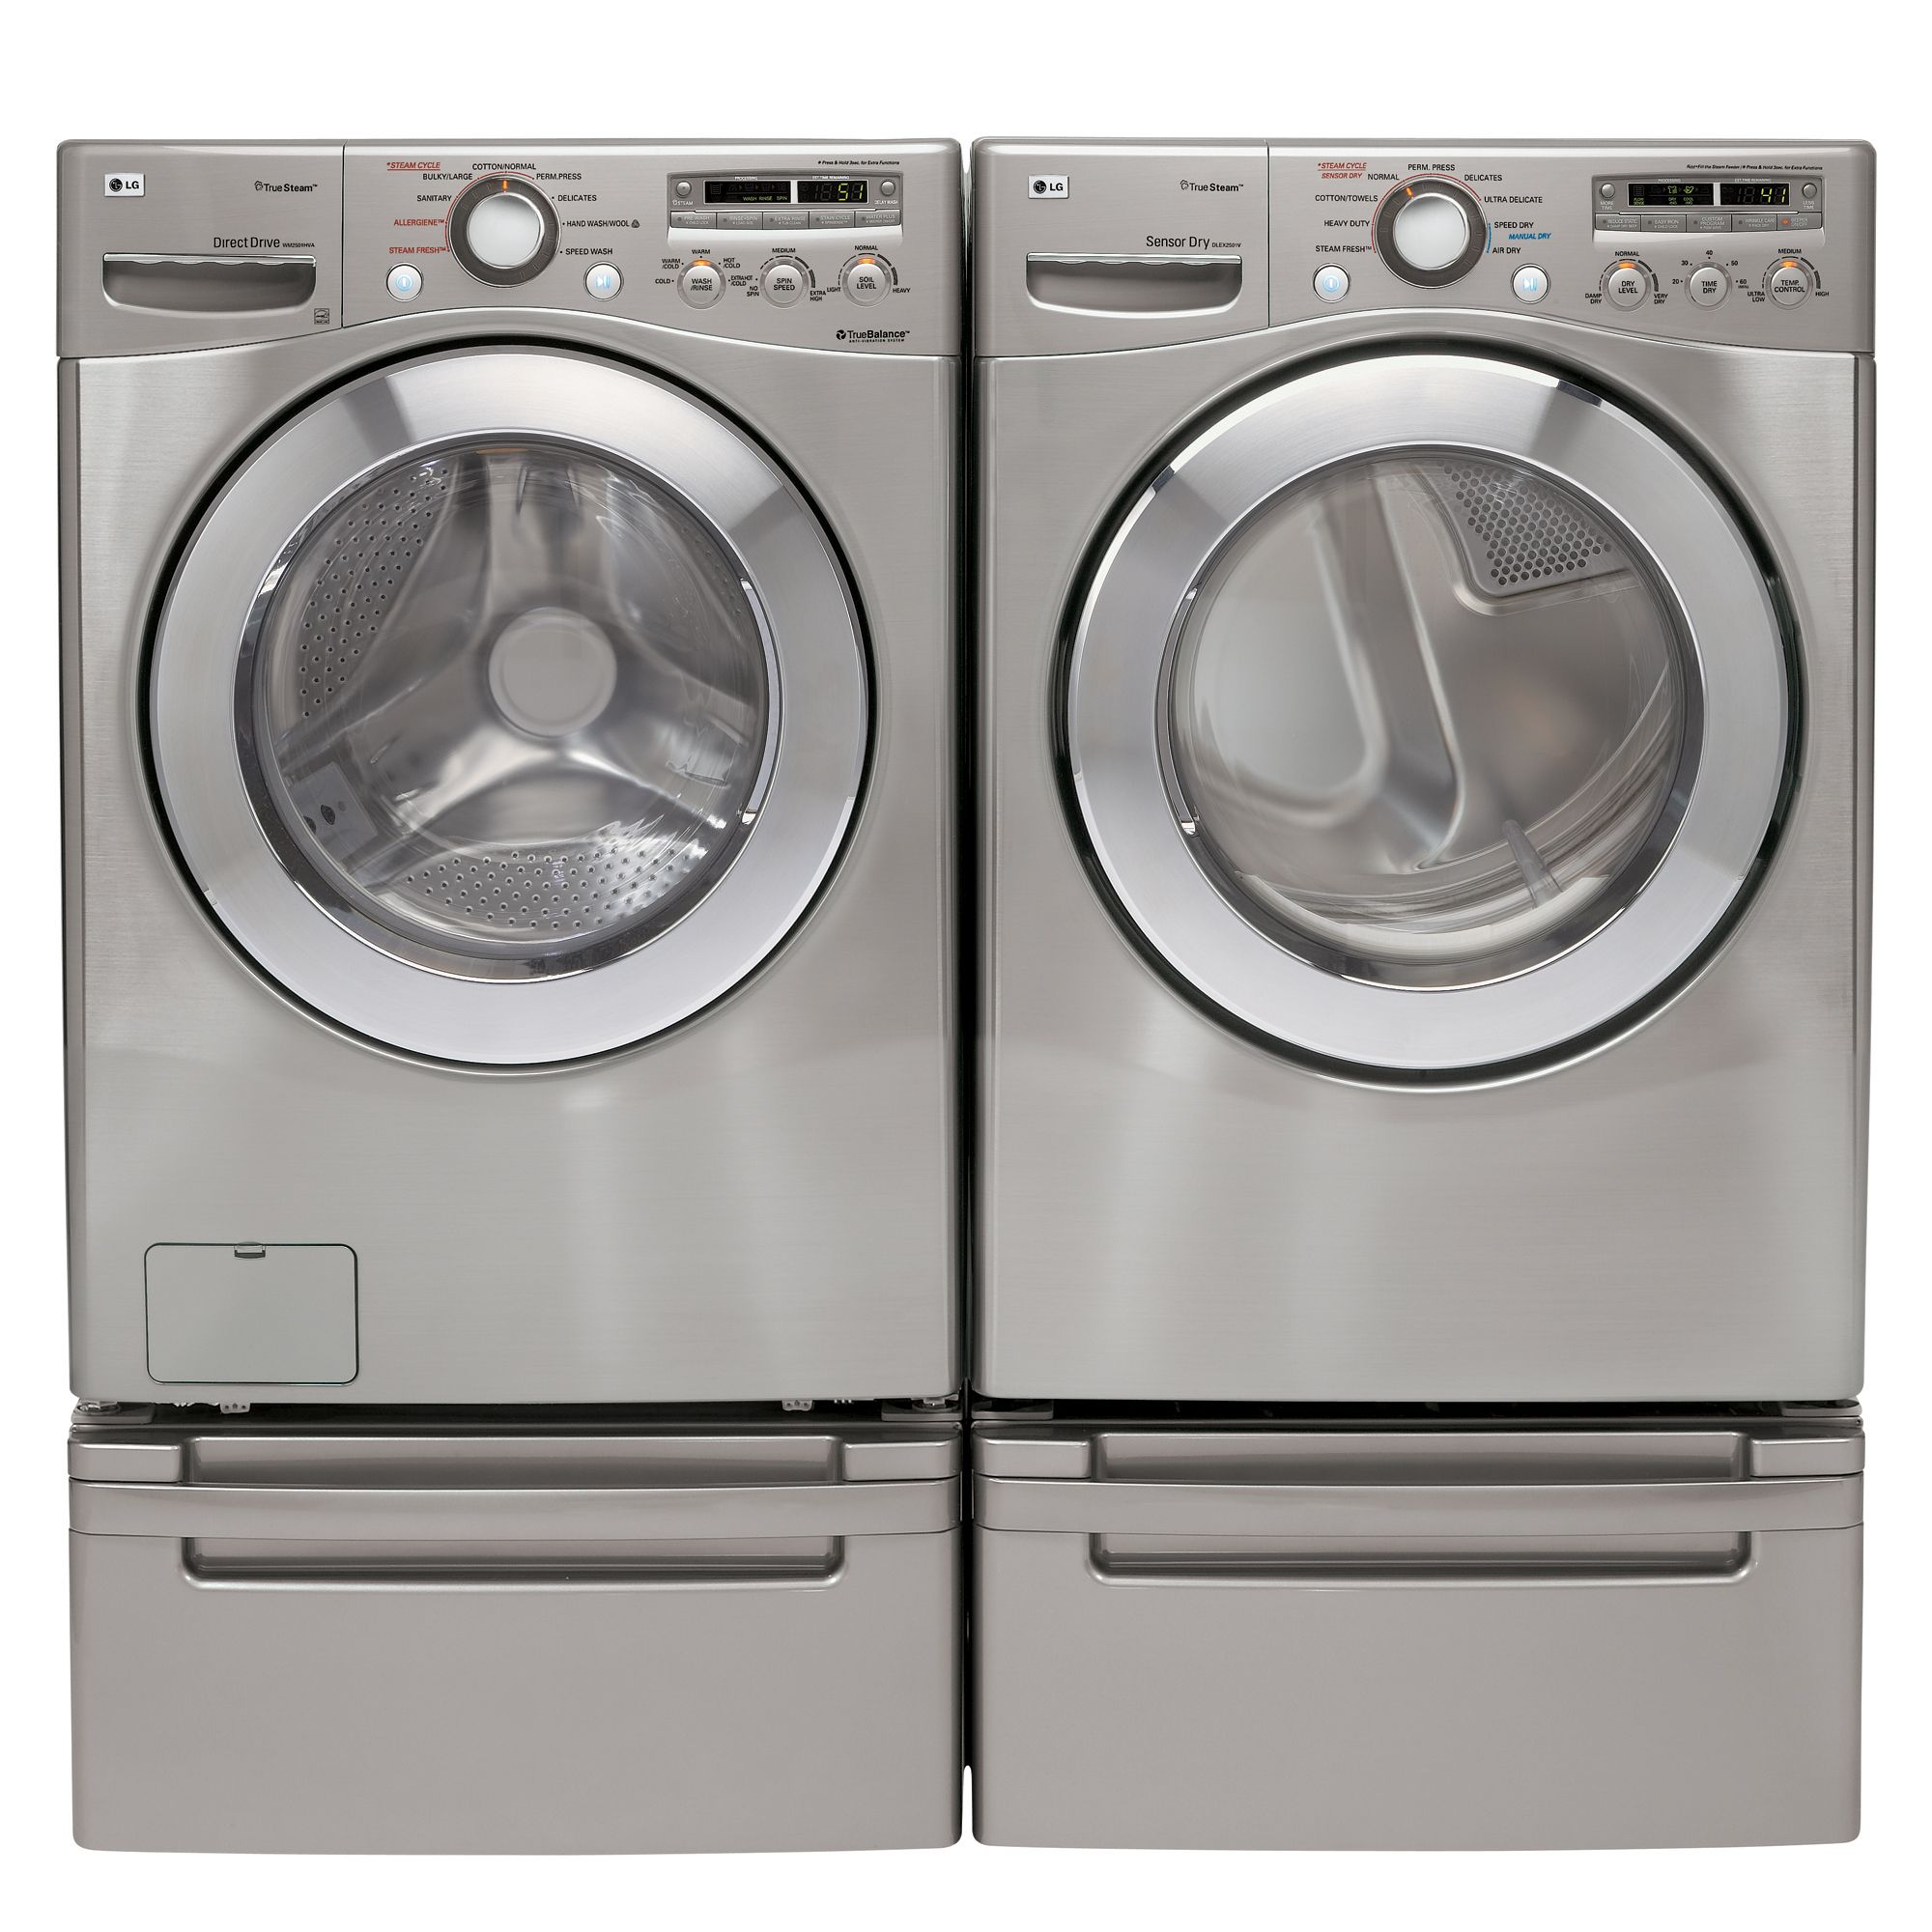 LG 7.3 cu. ft. Gas Dryer (DLGX2502)